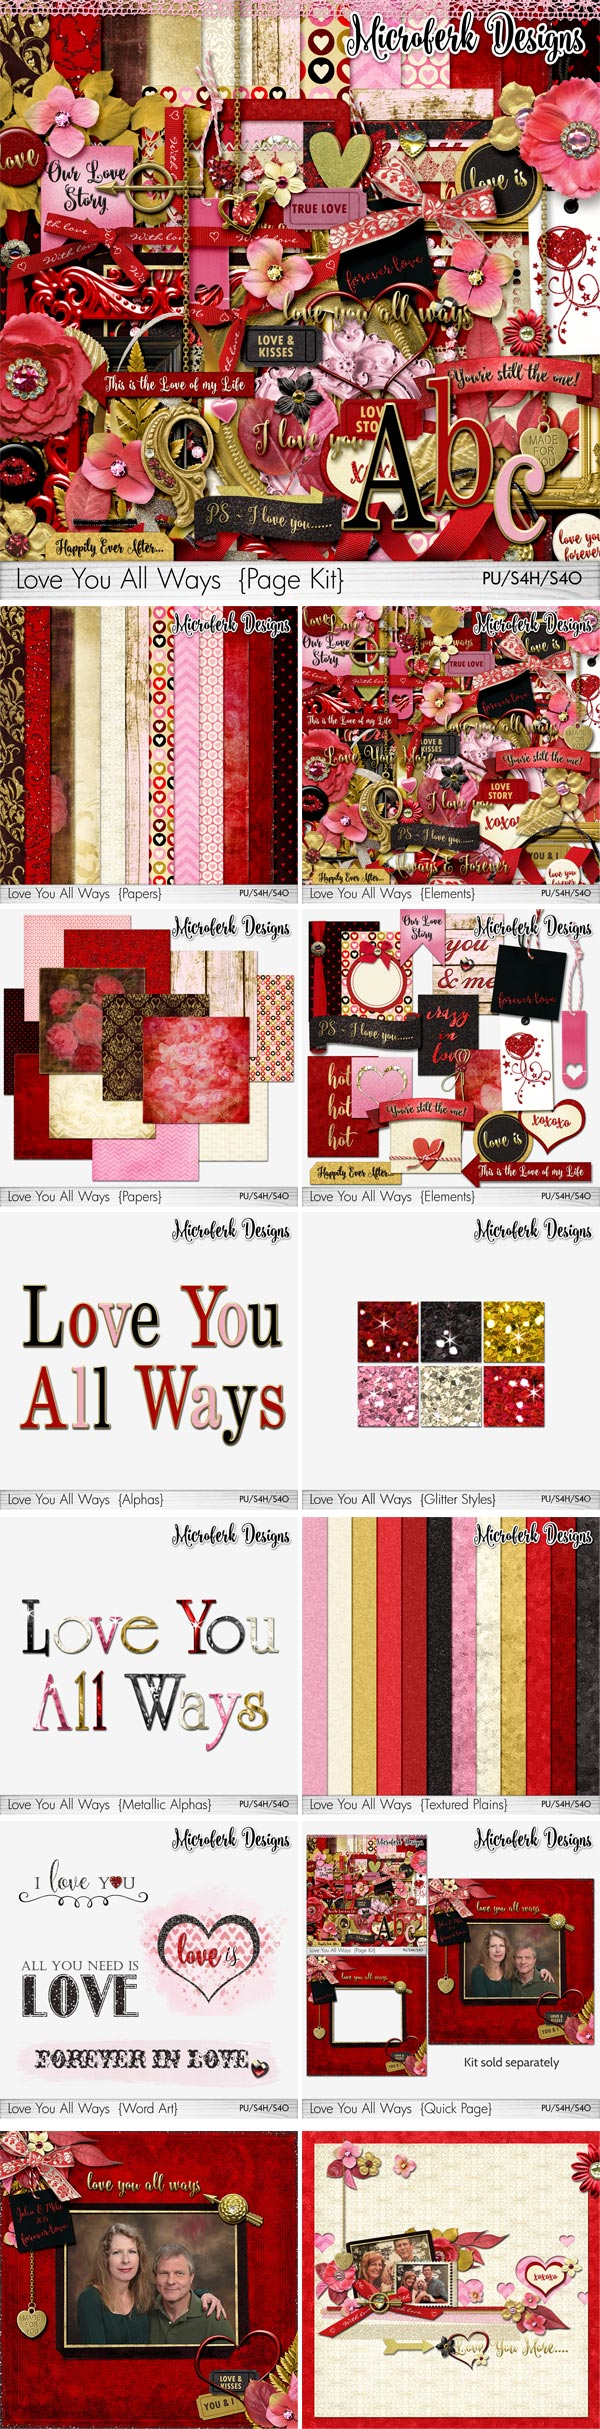 Love You All Ways Page Kit